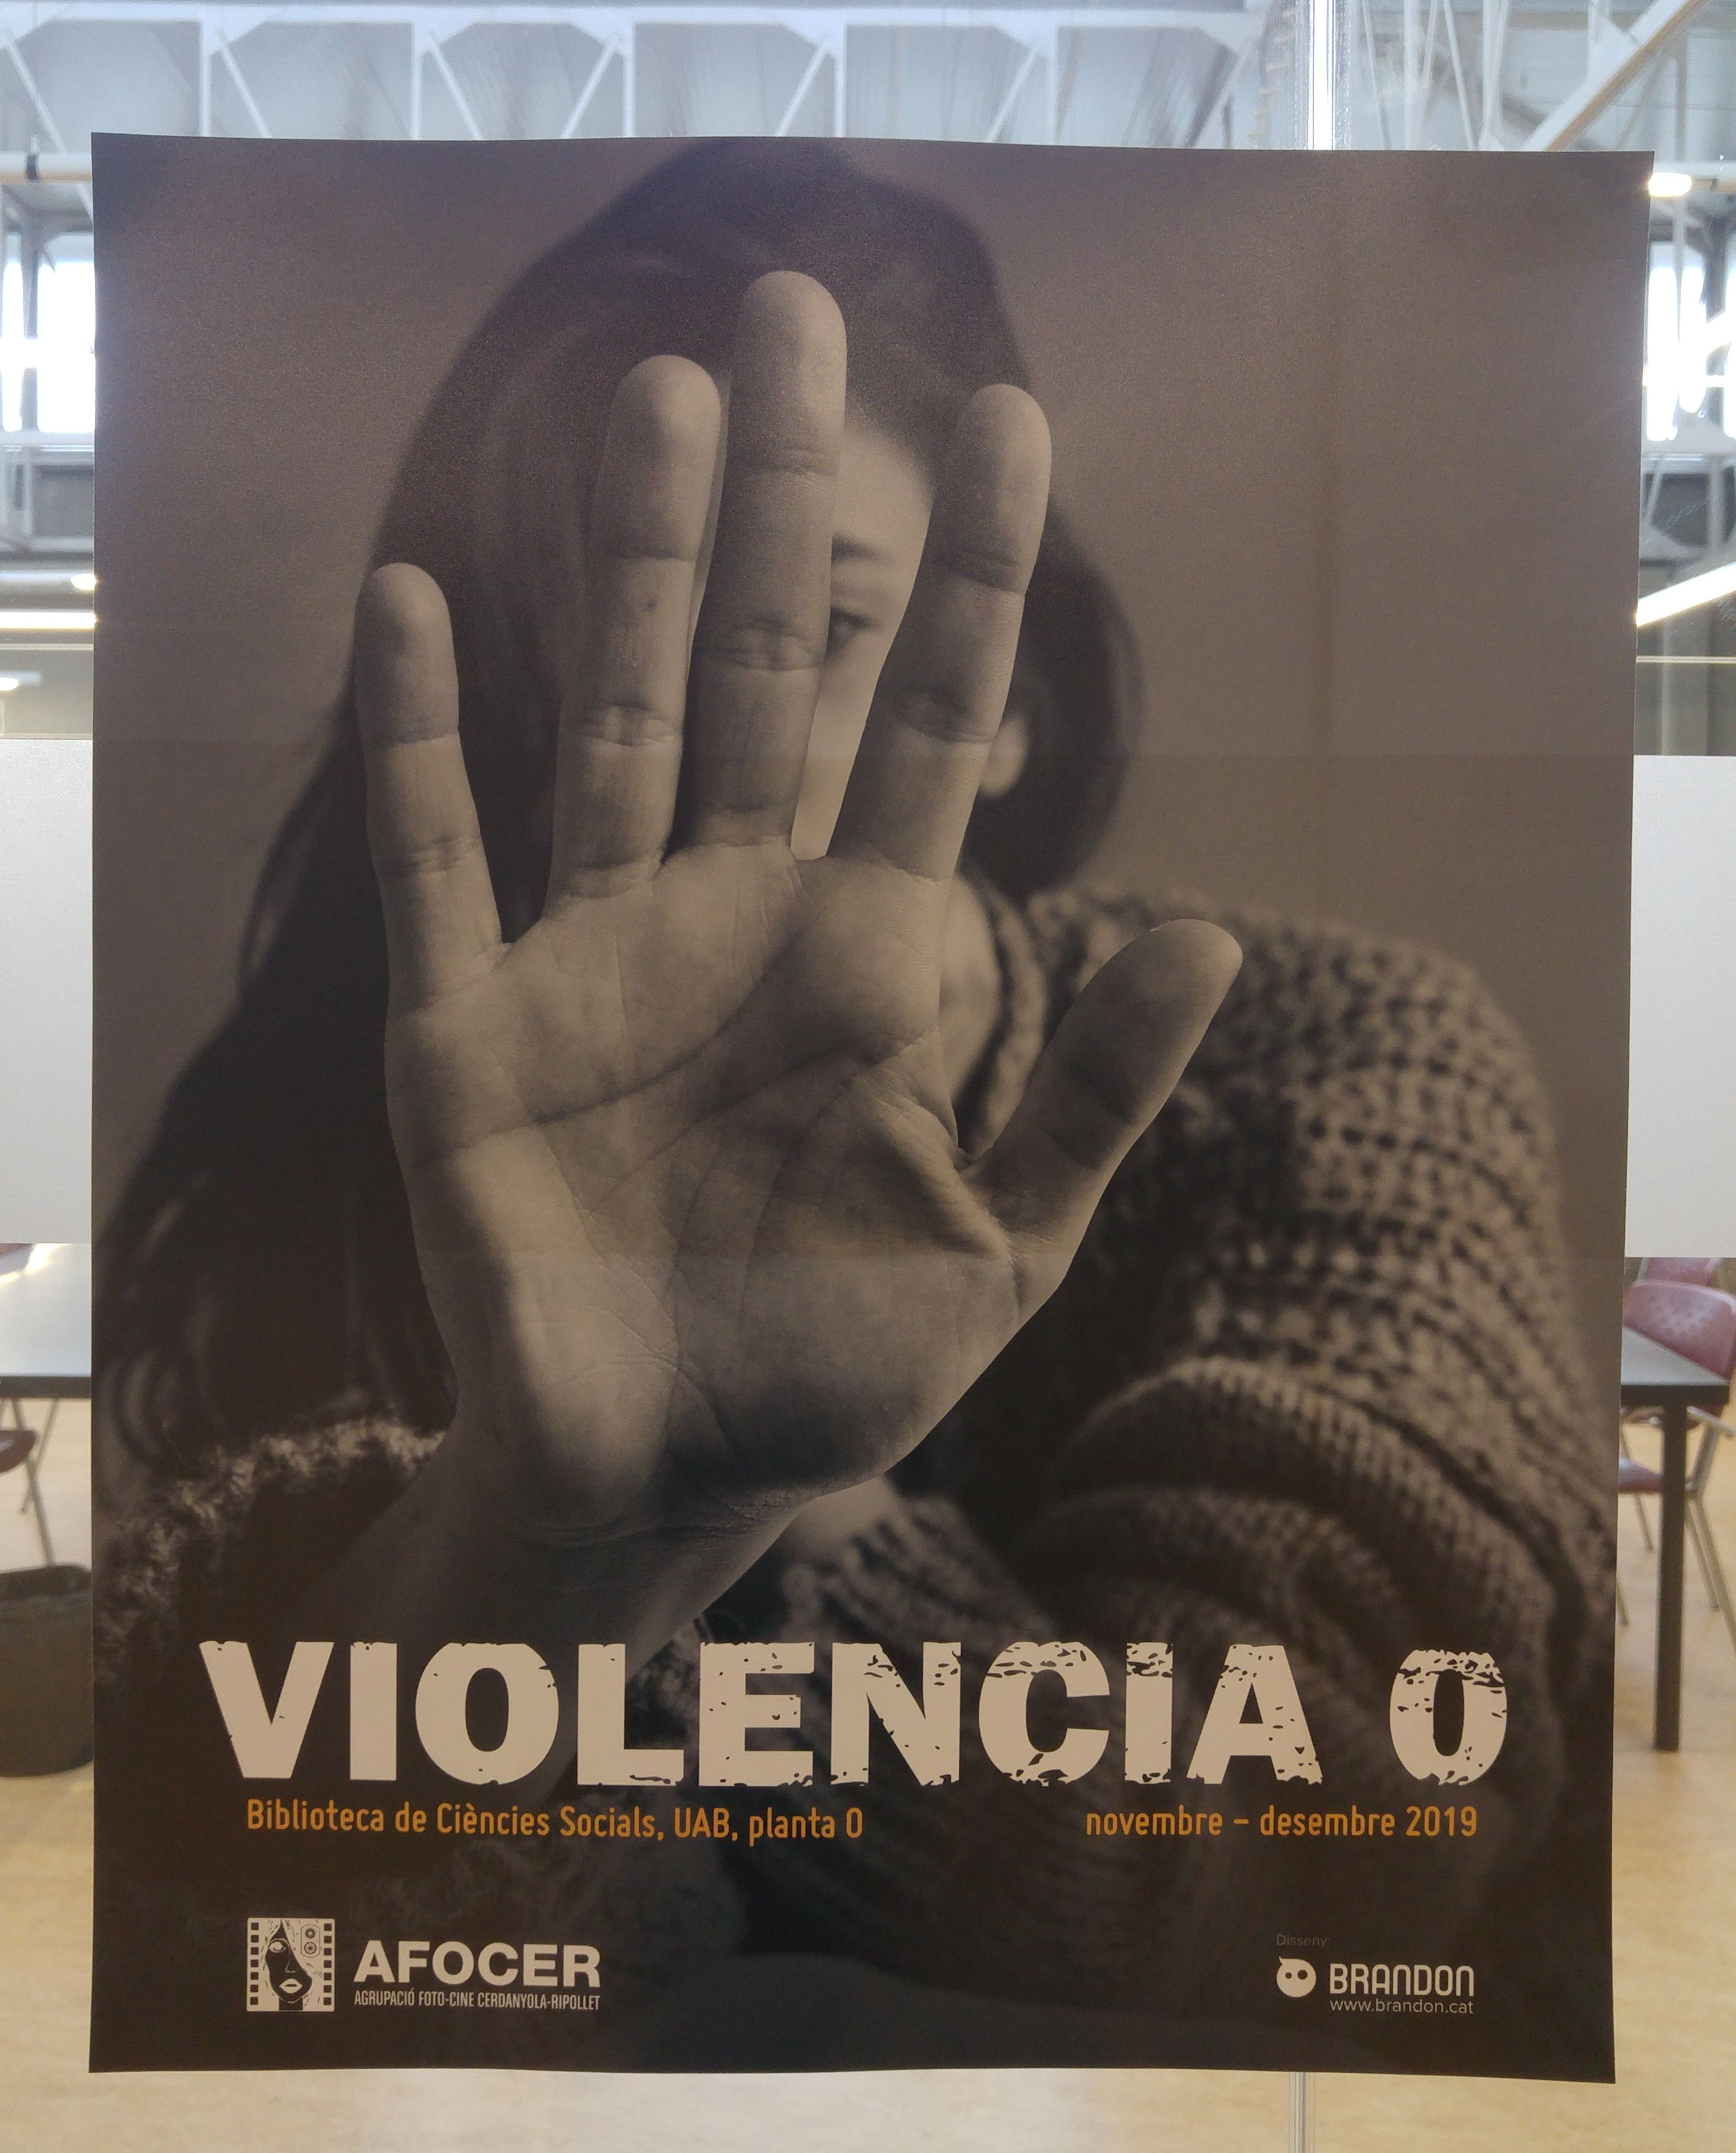 Image of the exhibition Violència 0